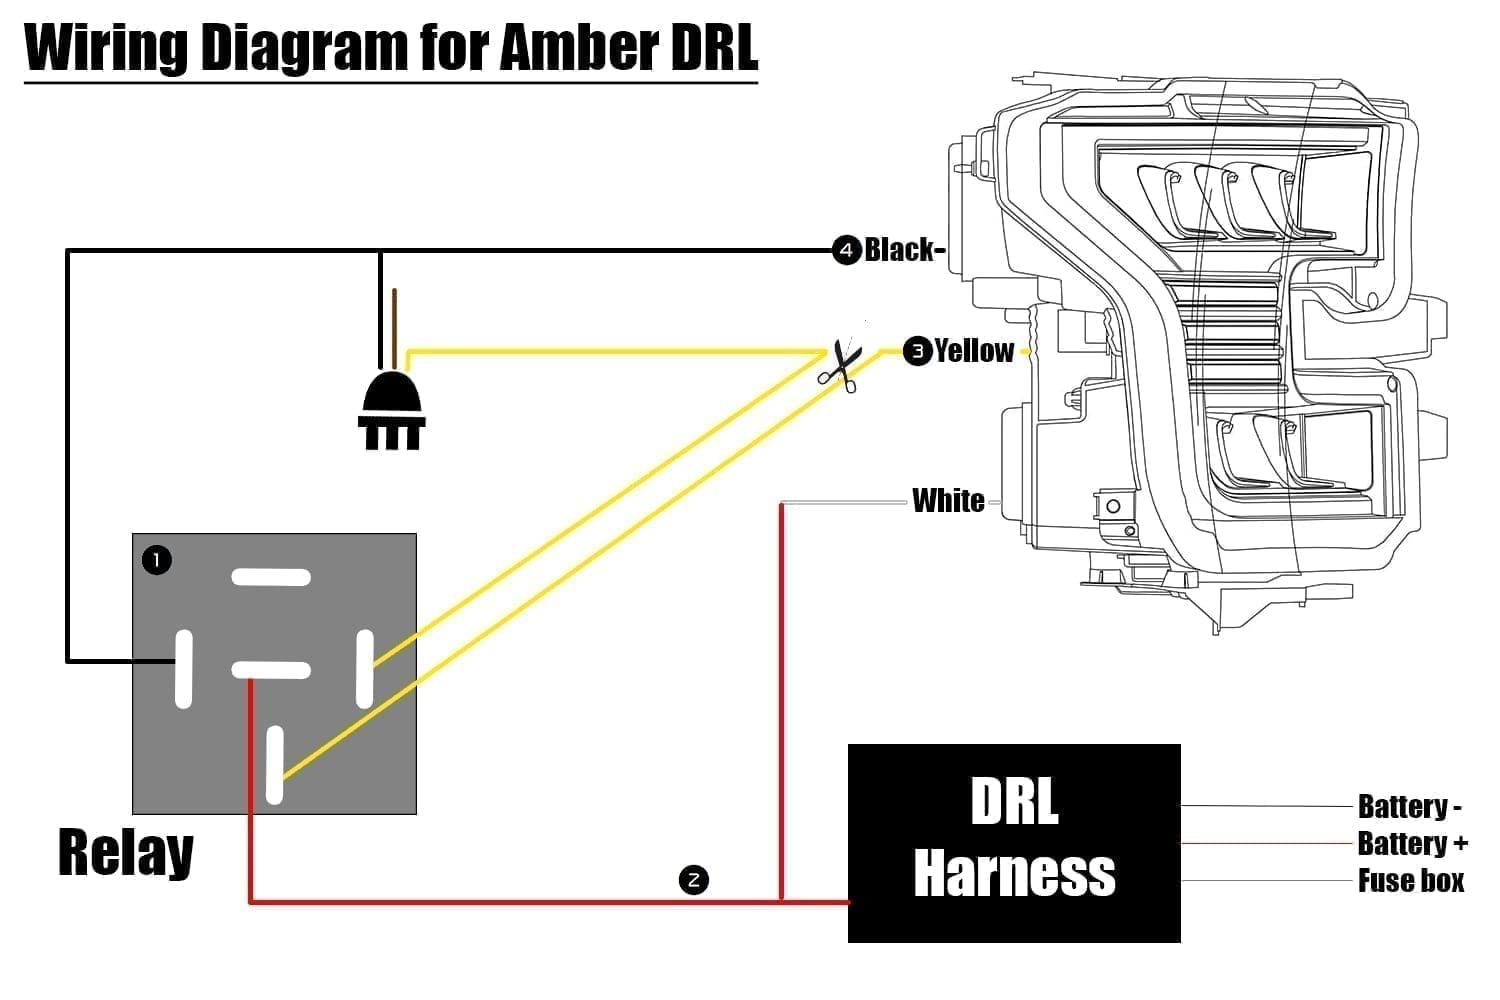 How to wire F150 DRL to be amber | AlphaRex Chevy Silverado Hd Wiring Diagram on 2016 chevy astro, 2016 chevy s-10, 2016 chevy edge, 2016 chevy impala police, 2016 chevy k1500, 2016 chevy colorado crew cab, 2016 chevy hhr, 2016 chevy corvette convertible, 2016 chevy corolla, 2016 chevy durango, 2016 chevy acadia, 2016 chevy lumina, 2016 chevy yukon, 2016 chevy venture, 2016 chevy corvette grand sport, 2016 chevy cruze eco, 2016 chevy mustang, 2016 chevy corvette coupe, 2016 chevy truck, 2016 chevy terrain,